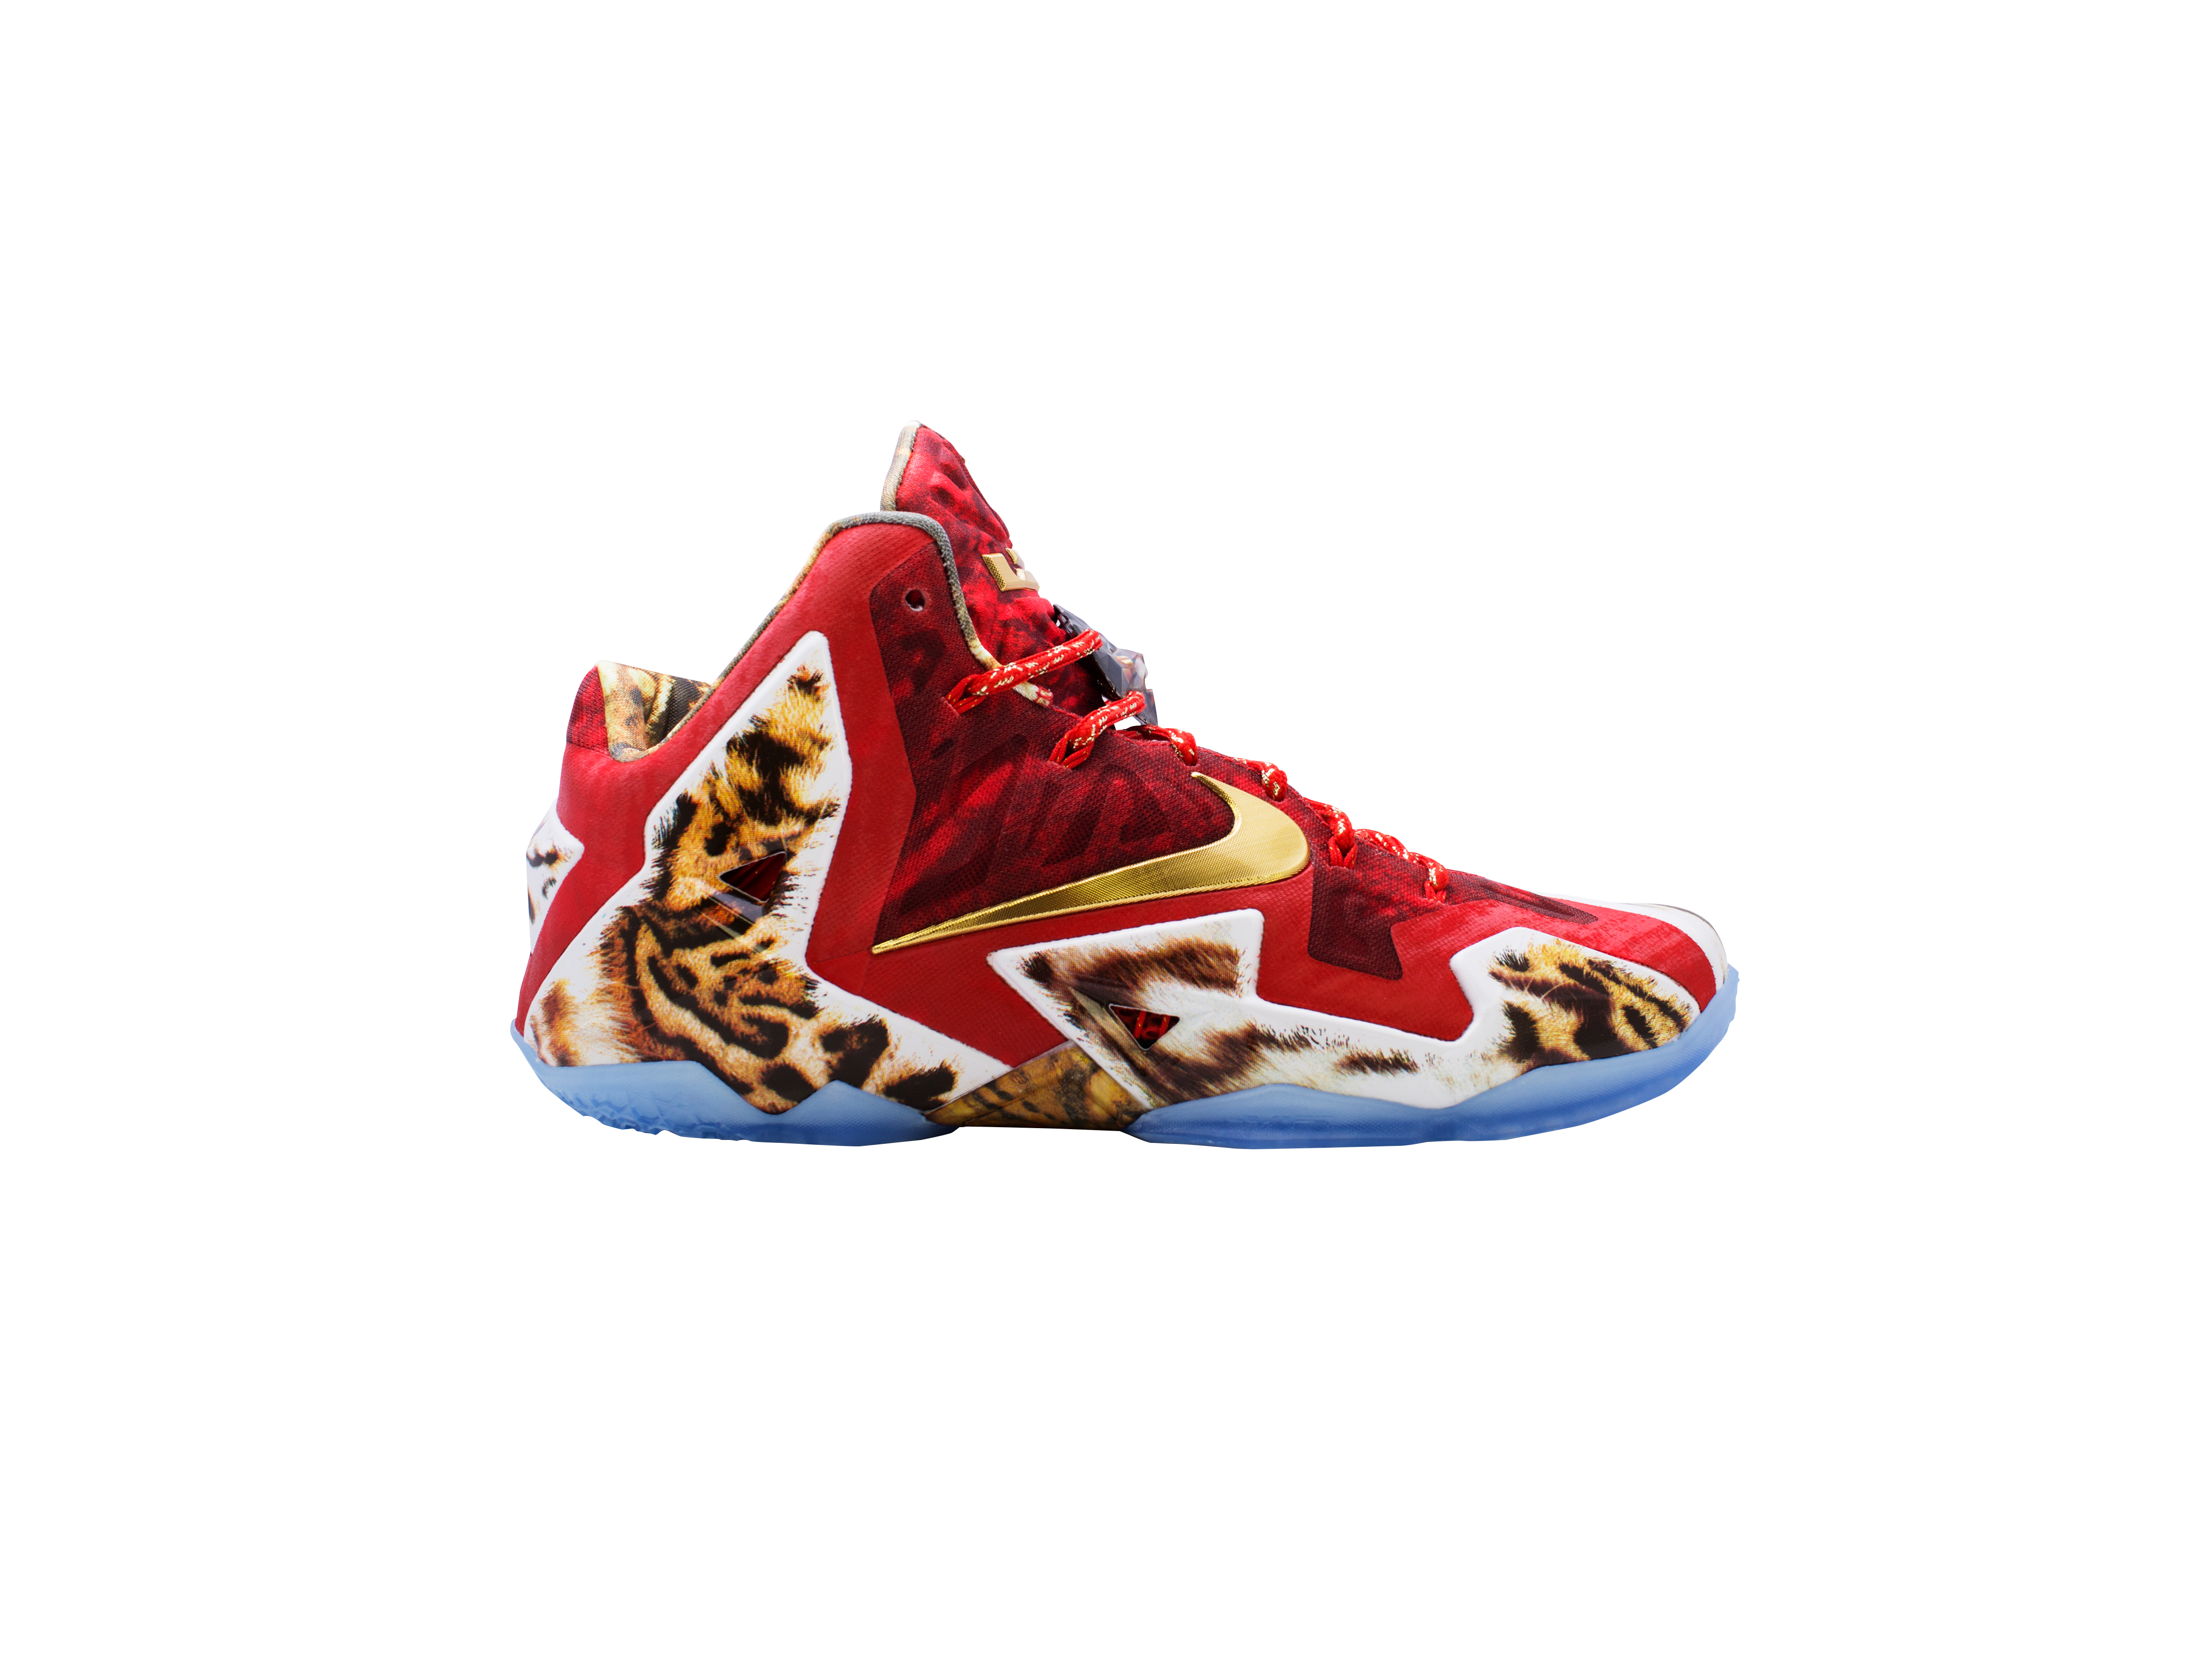 Nike Basketball and 2K Sports Unveil In-Game LEBRON 11 2K14 Shoe. Download  Image: LO � HI